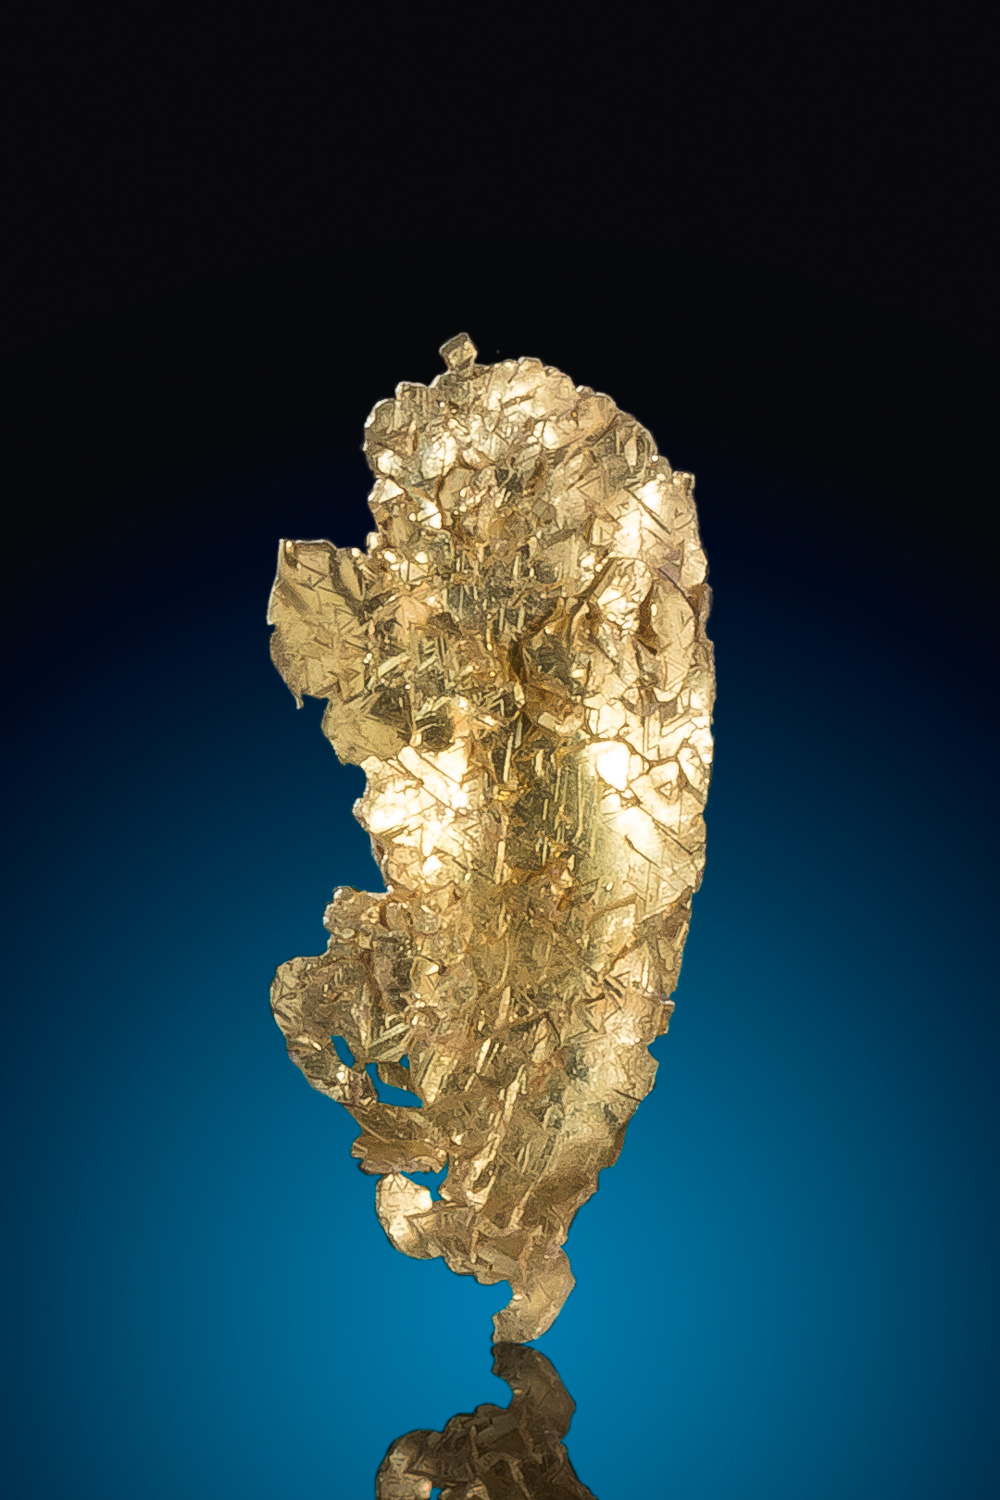 Brilliant Crystalized Leaf Gold Specimen - Round Mountain